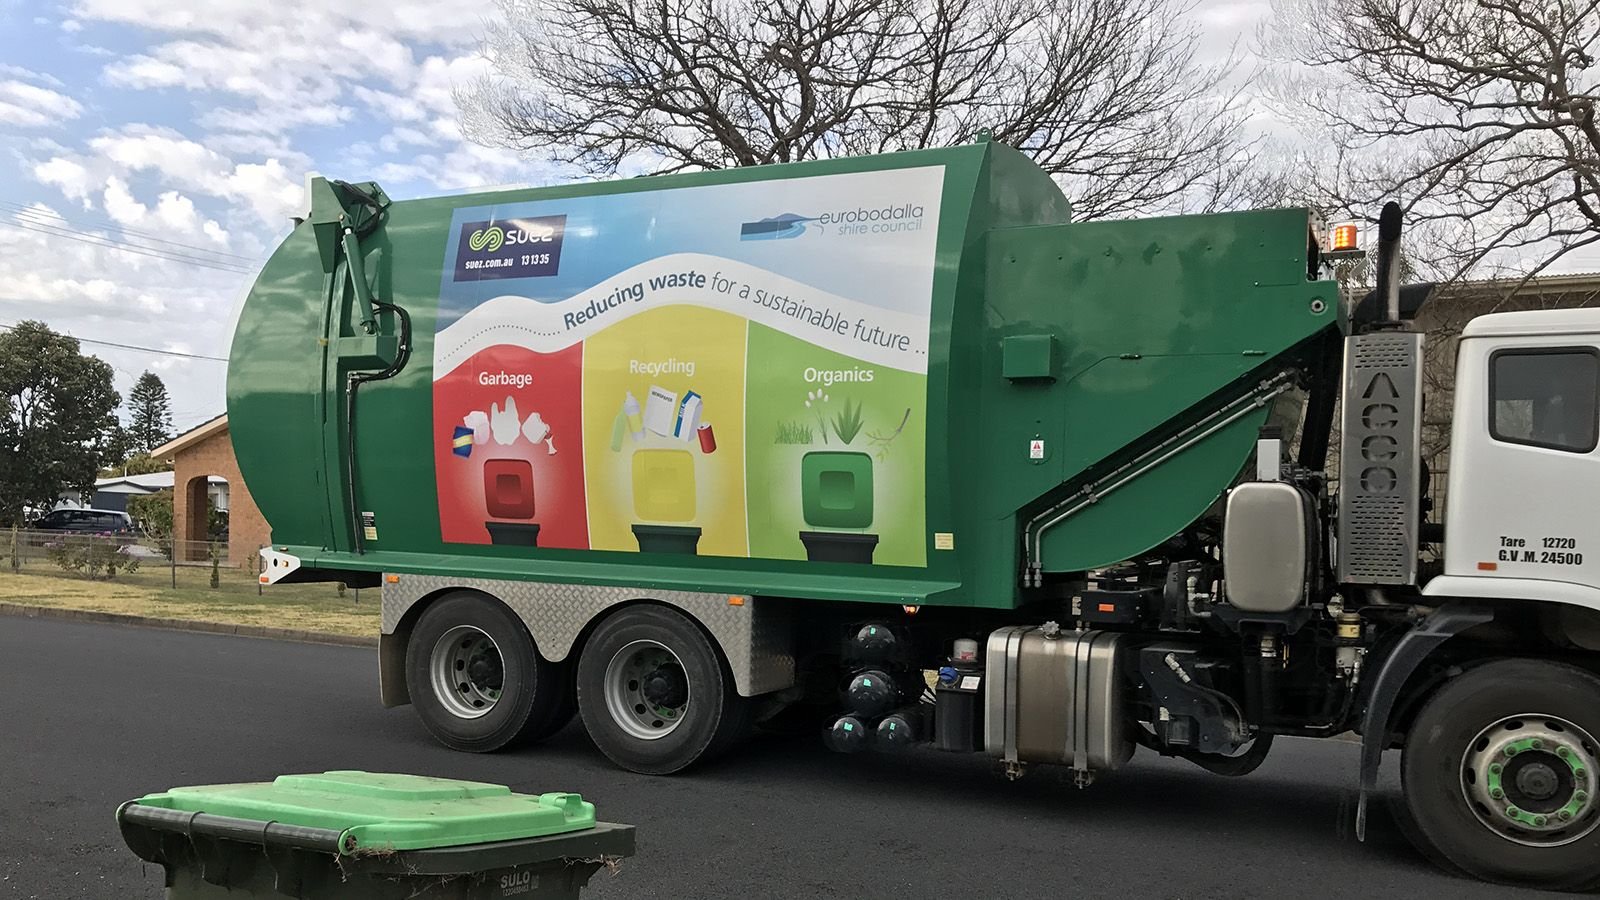 A Eurobodalla bin collection truck on the road banner image